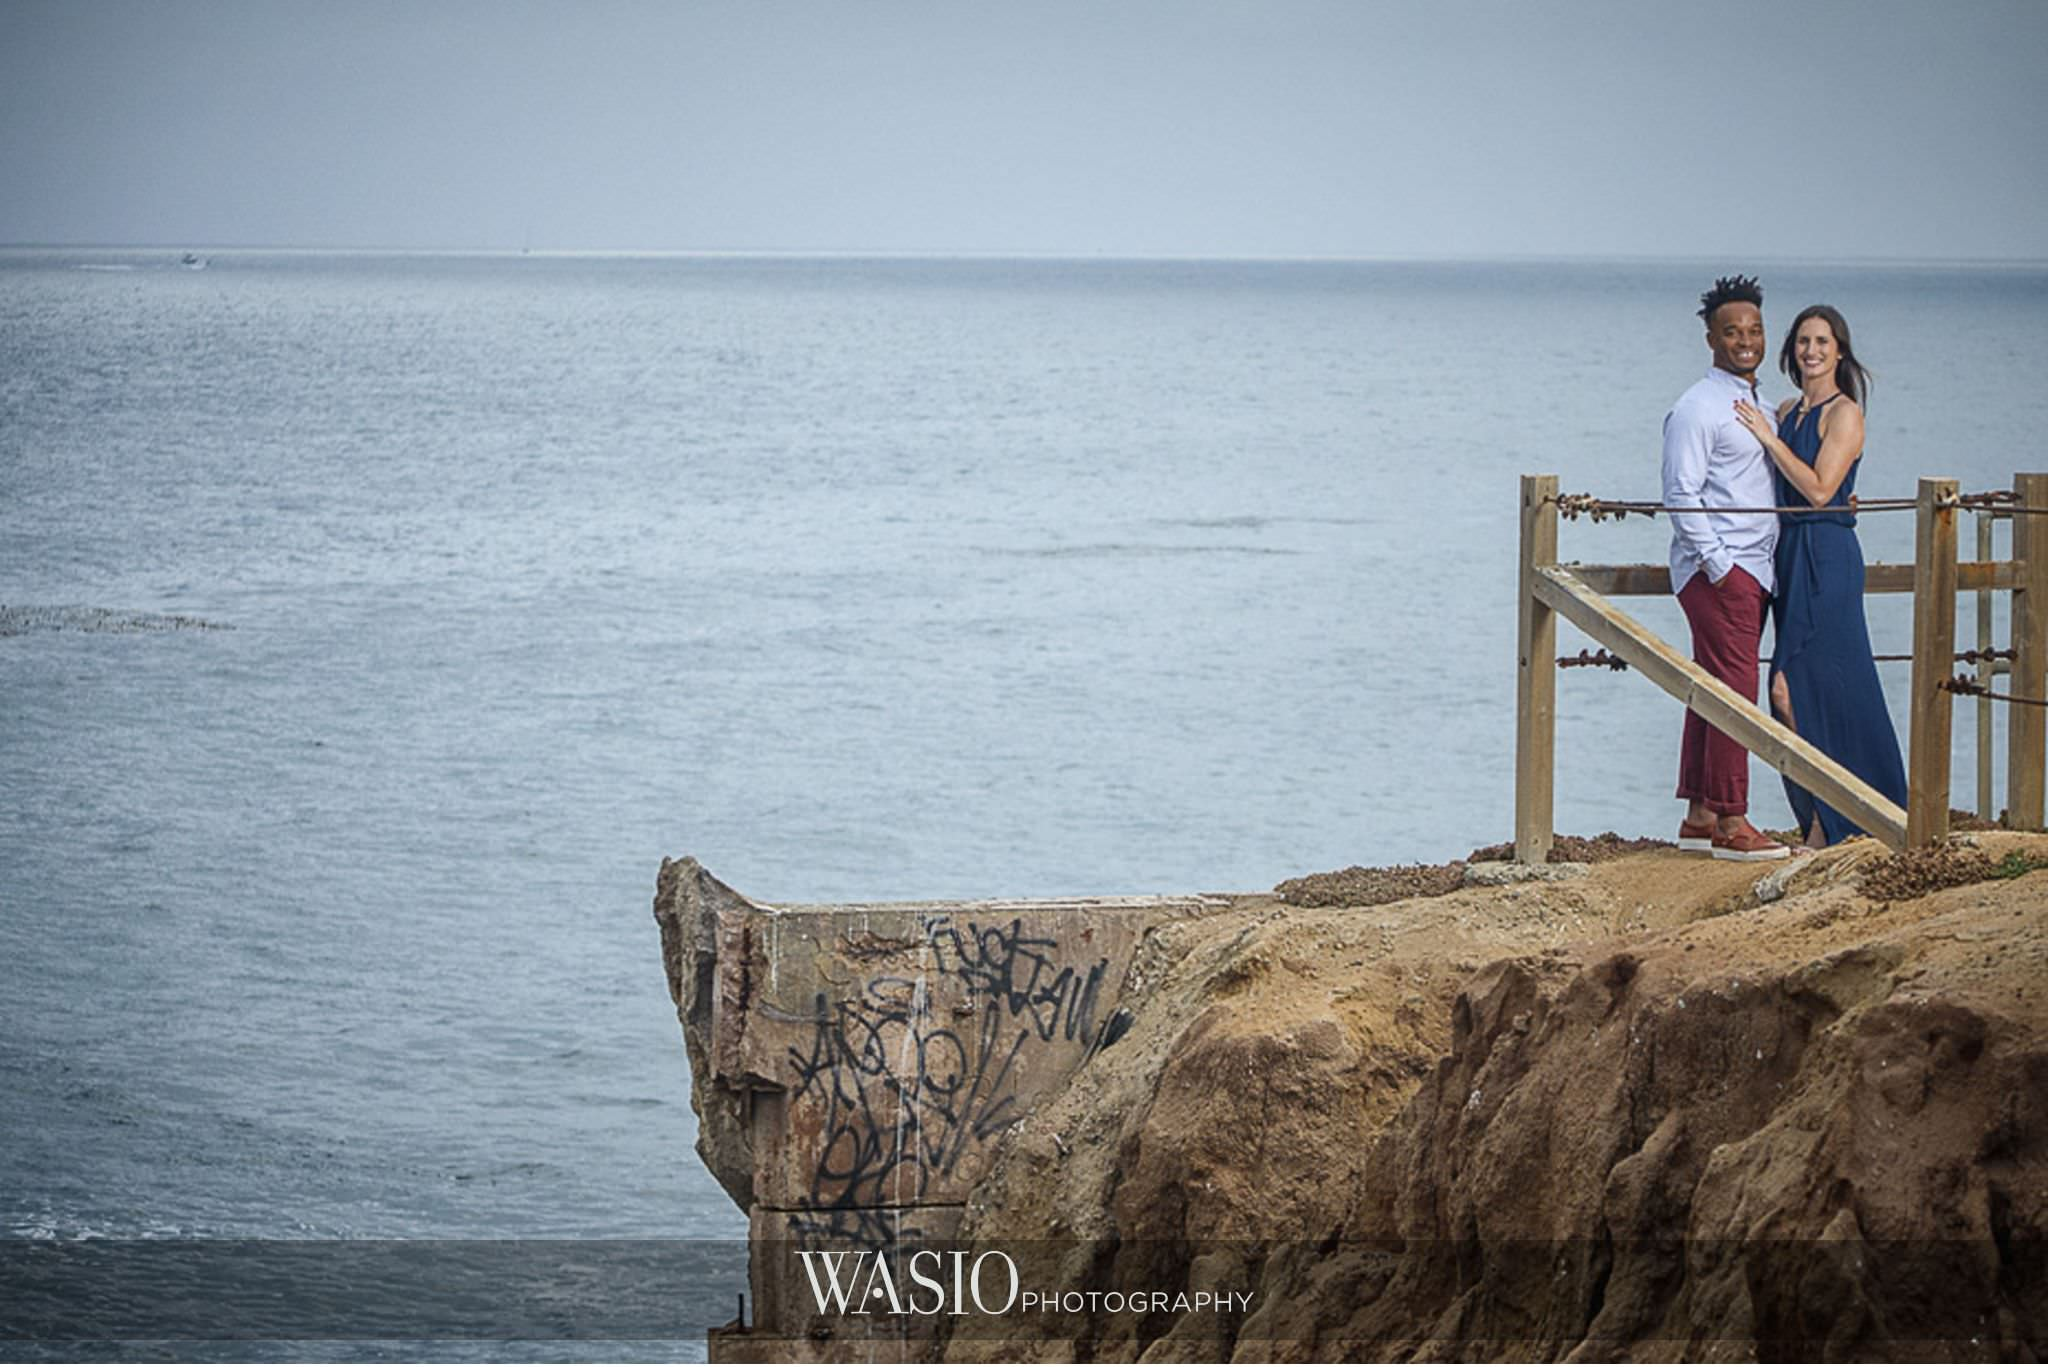 Sunset-Cliffs-San-Diego-Engagement-romantic-landscape-photography-70 Sunset Cliffs San Diego Engagement - Laura and La Broi